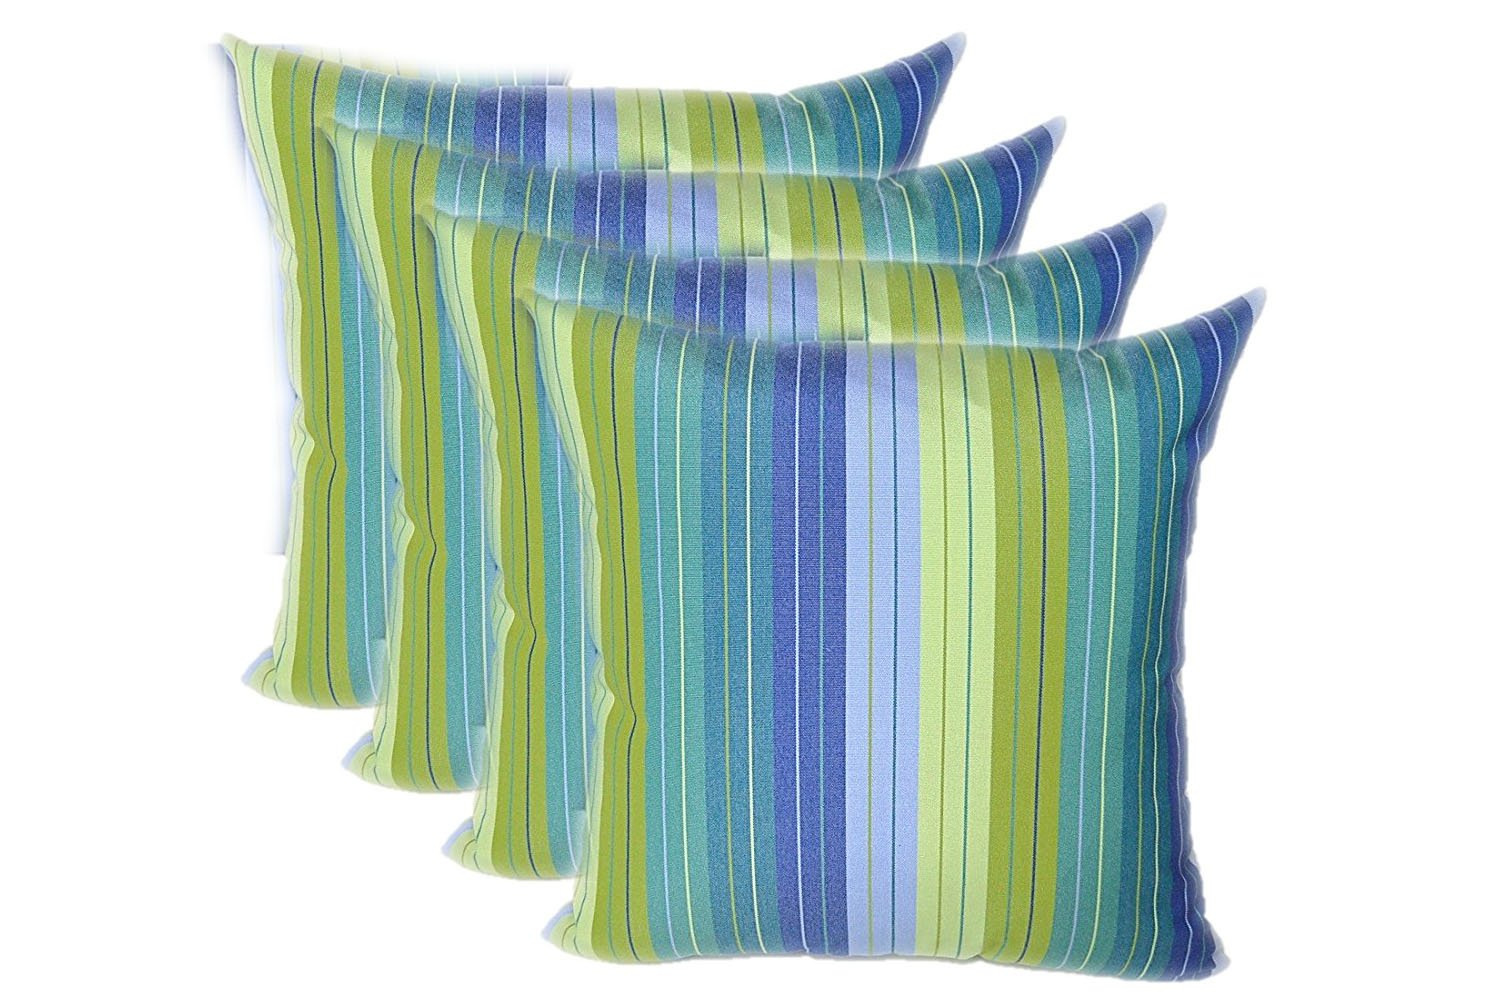 RSH DECOR Set of 4 Indoor Outdoor 17 Square Decorative Throw Pillows – Sunbrella Seville Seaside Blue and Green Stripe